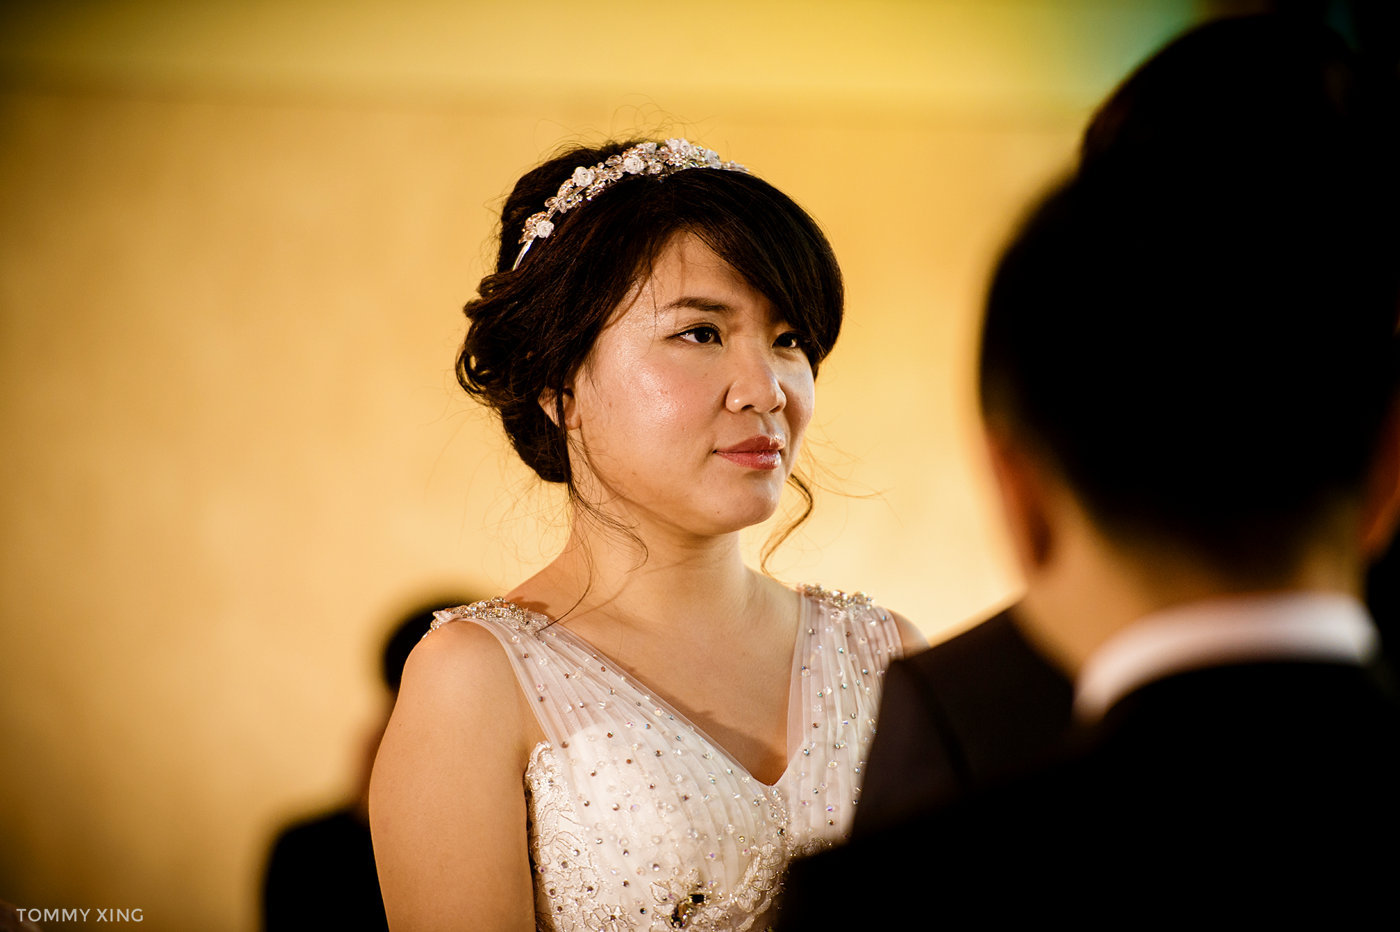 Qinglu Meng & Daozheng Chen Wedding Slideshow-147-E.JPG